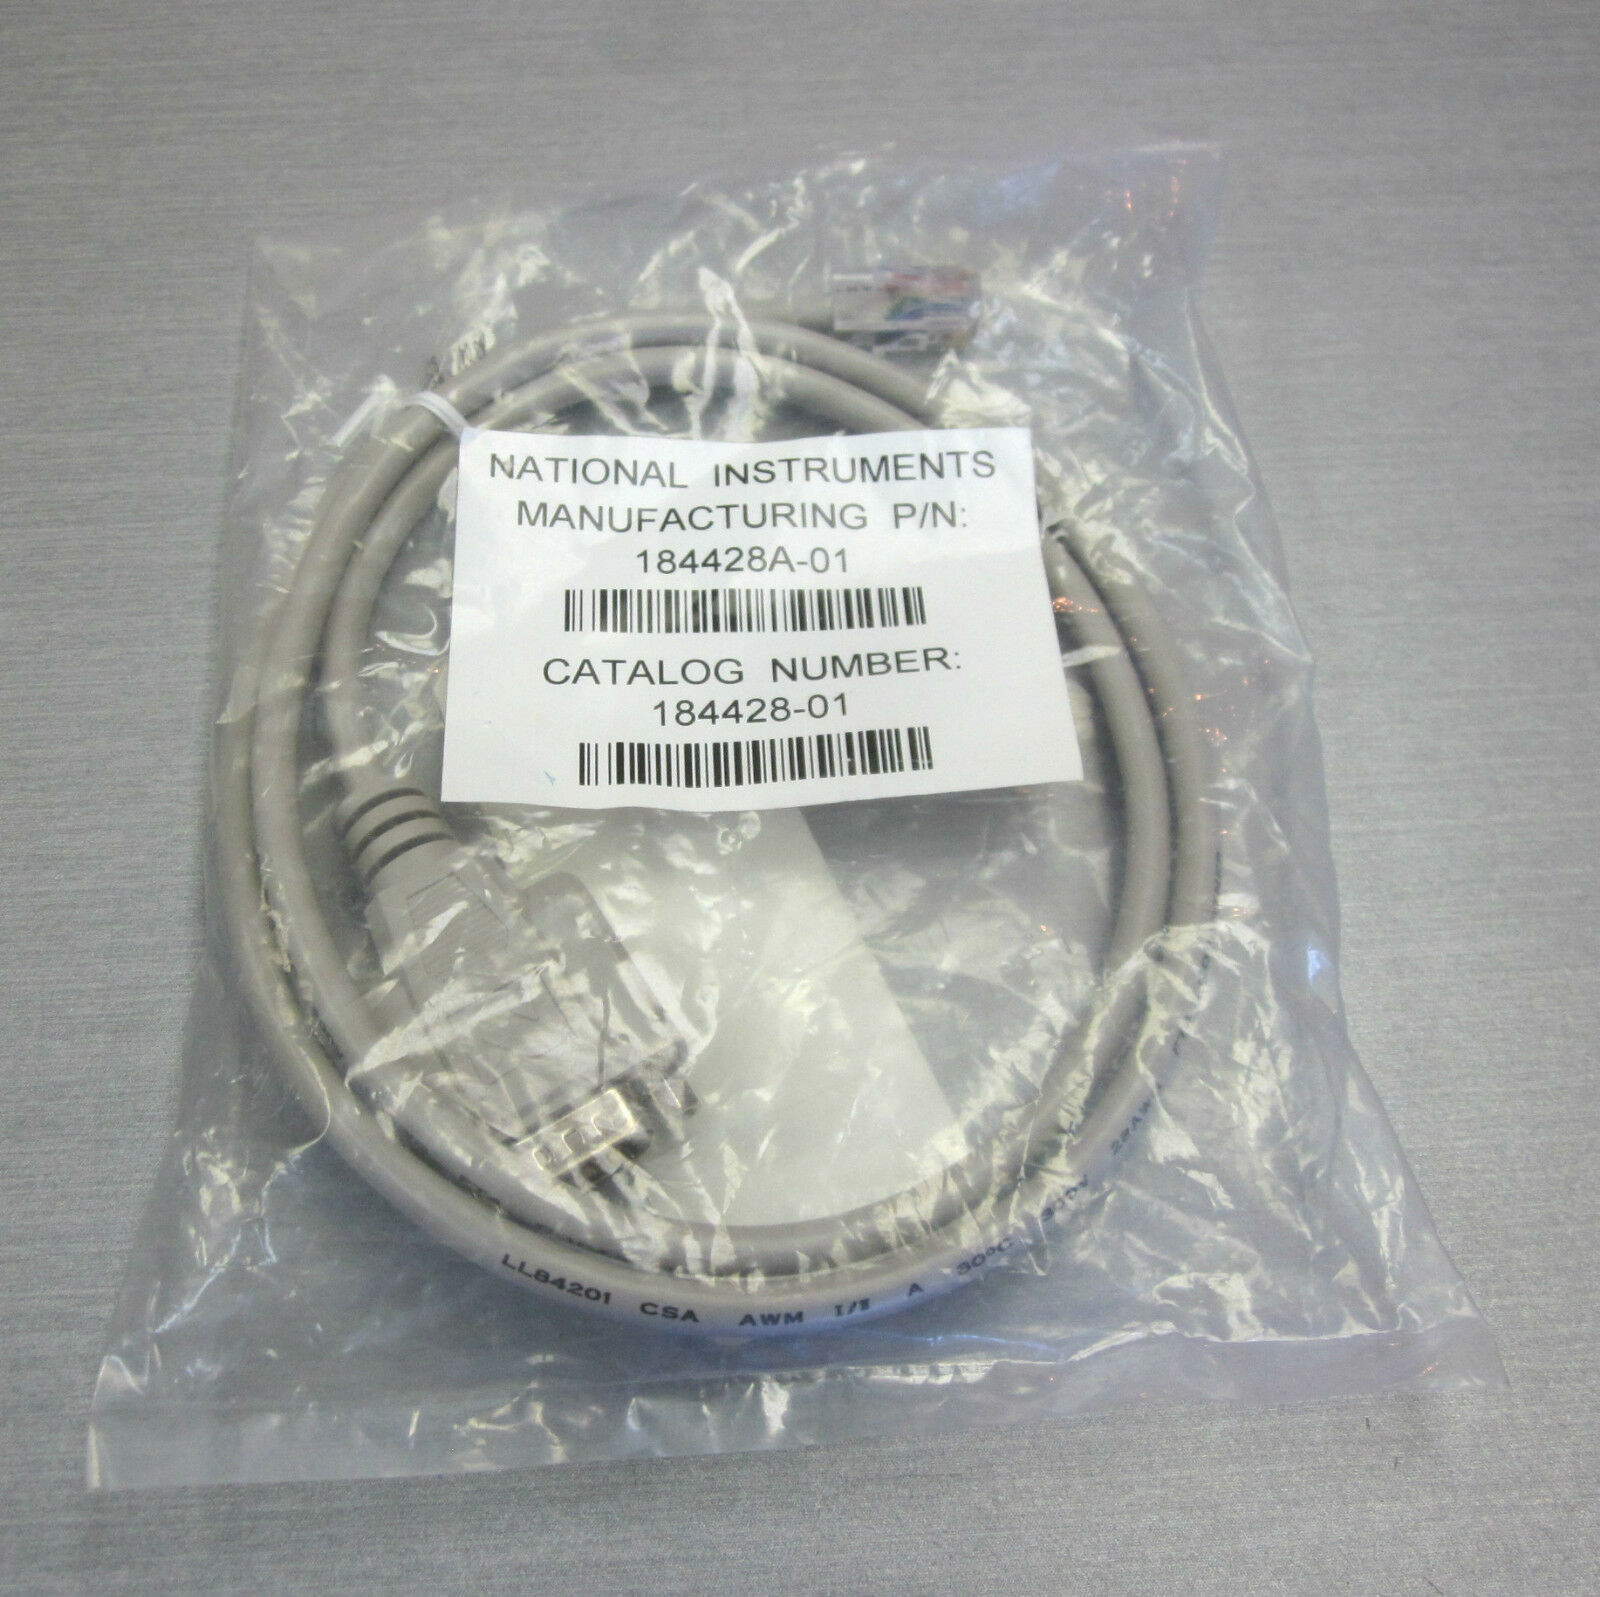 National Instruments 184428a-01 9-pin 1m Cable | eBay